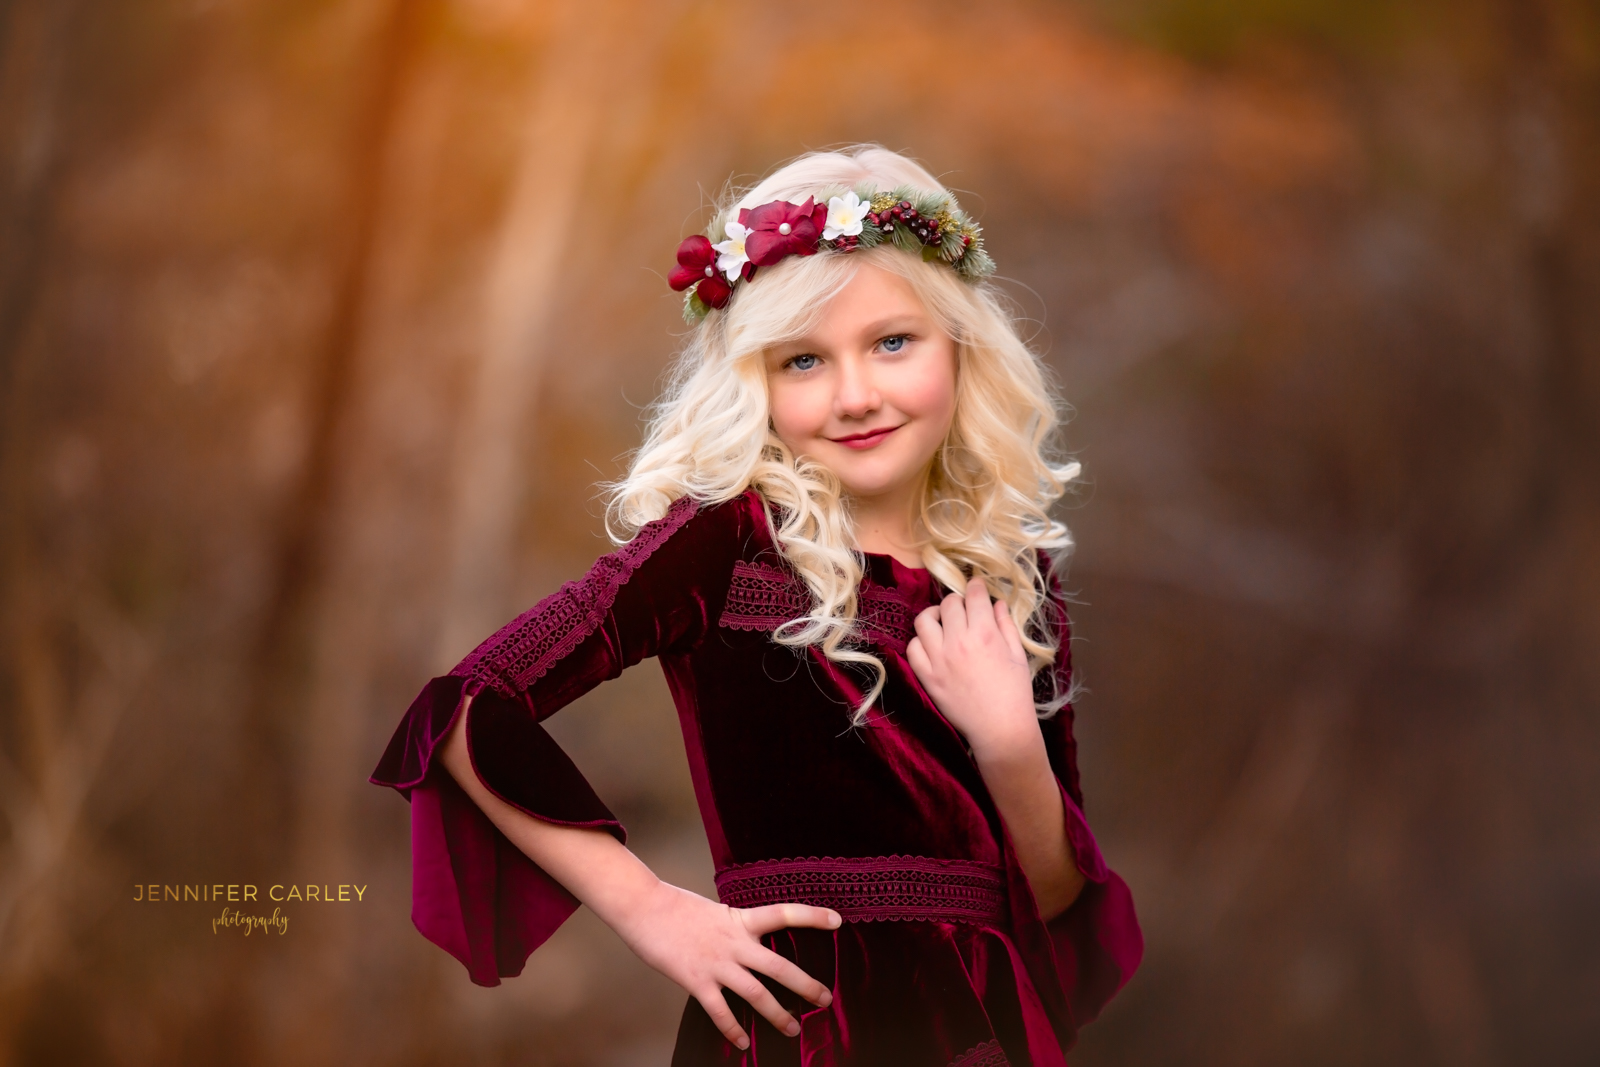 Flower Mound Portrait Photographer Weddings, Families, & HS Seniors